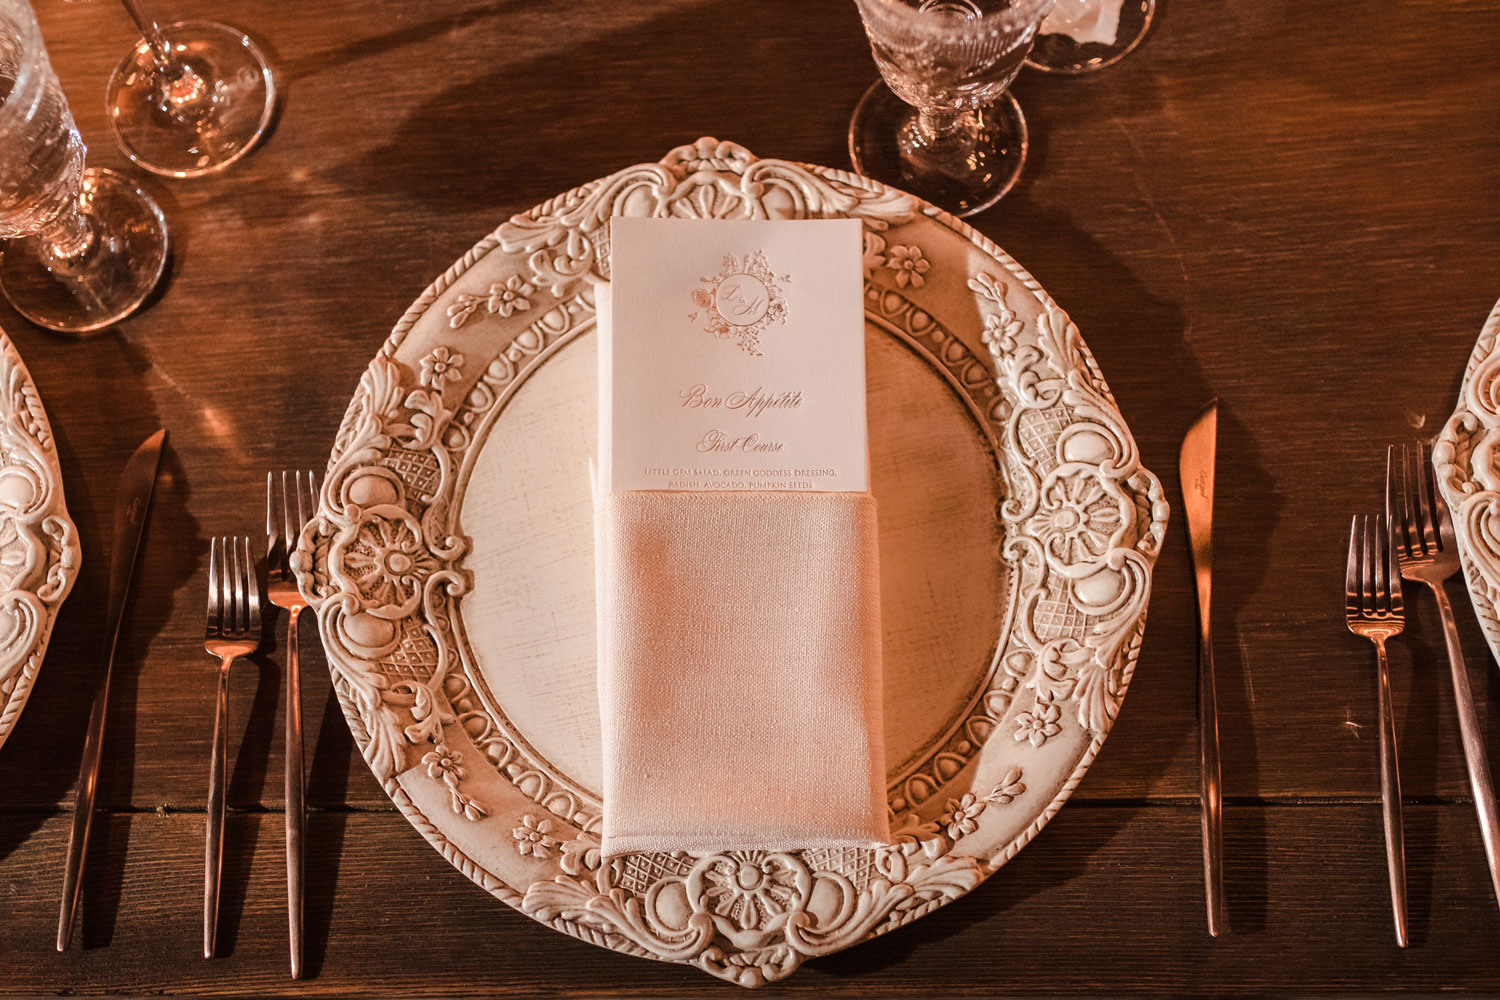 Top Chef Marcel Vigneron and Lauren Rae Levy real wedding planned by Tessa Lyn Events charger plate menu card